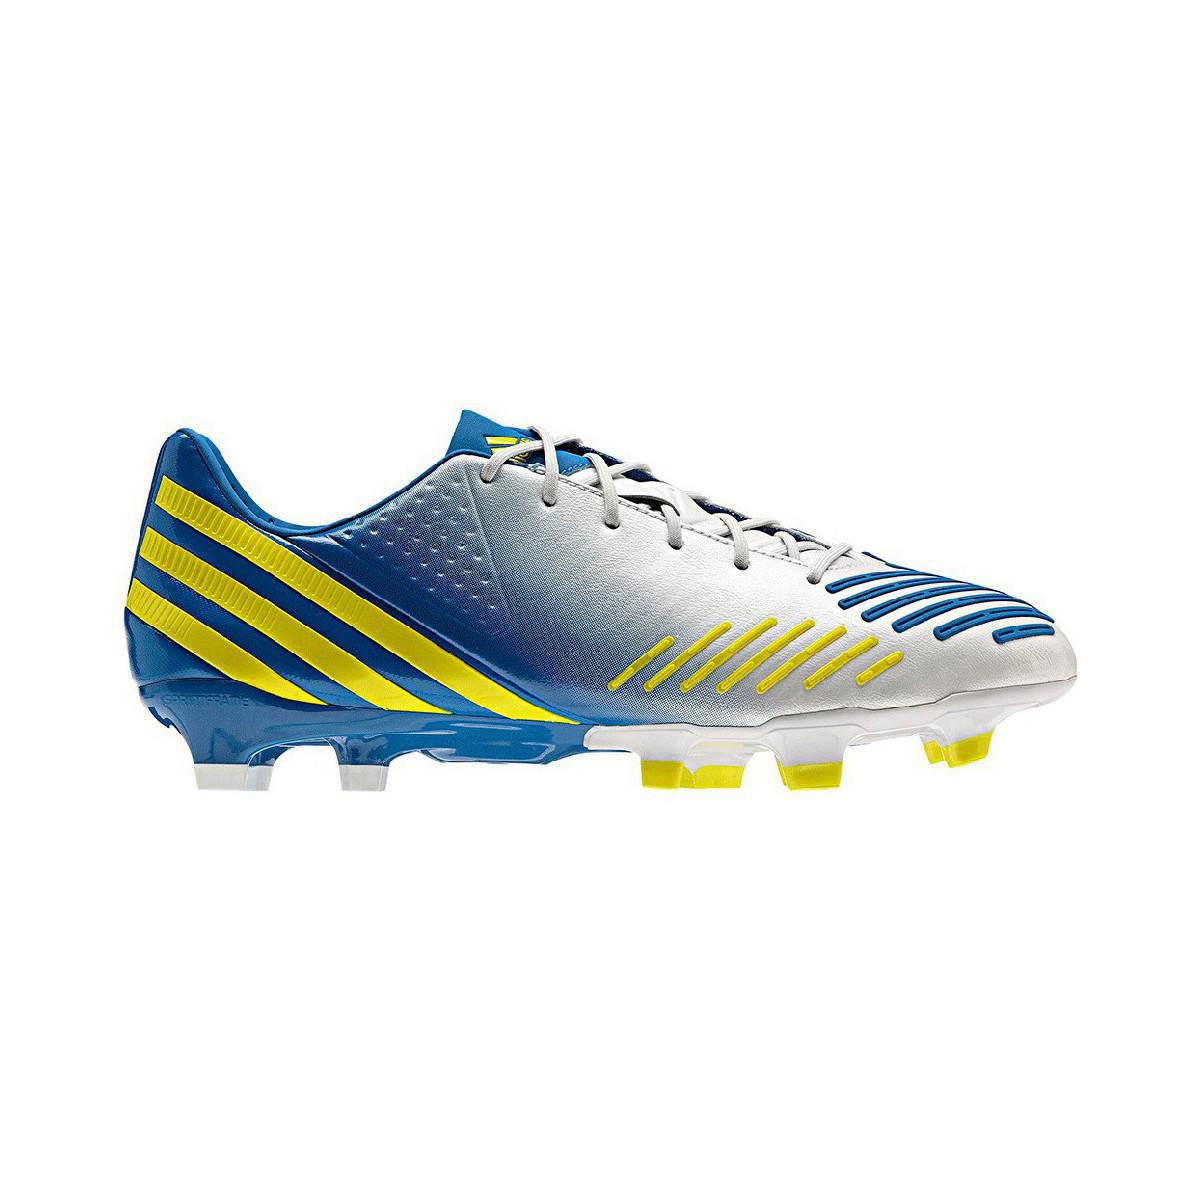 the best attitude a4218 2ad30 Adidas Predator Lz Trx Fg Men s Football Boots In Silver in Metallic ...